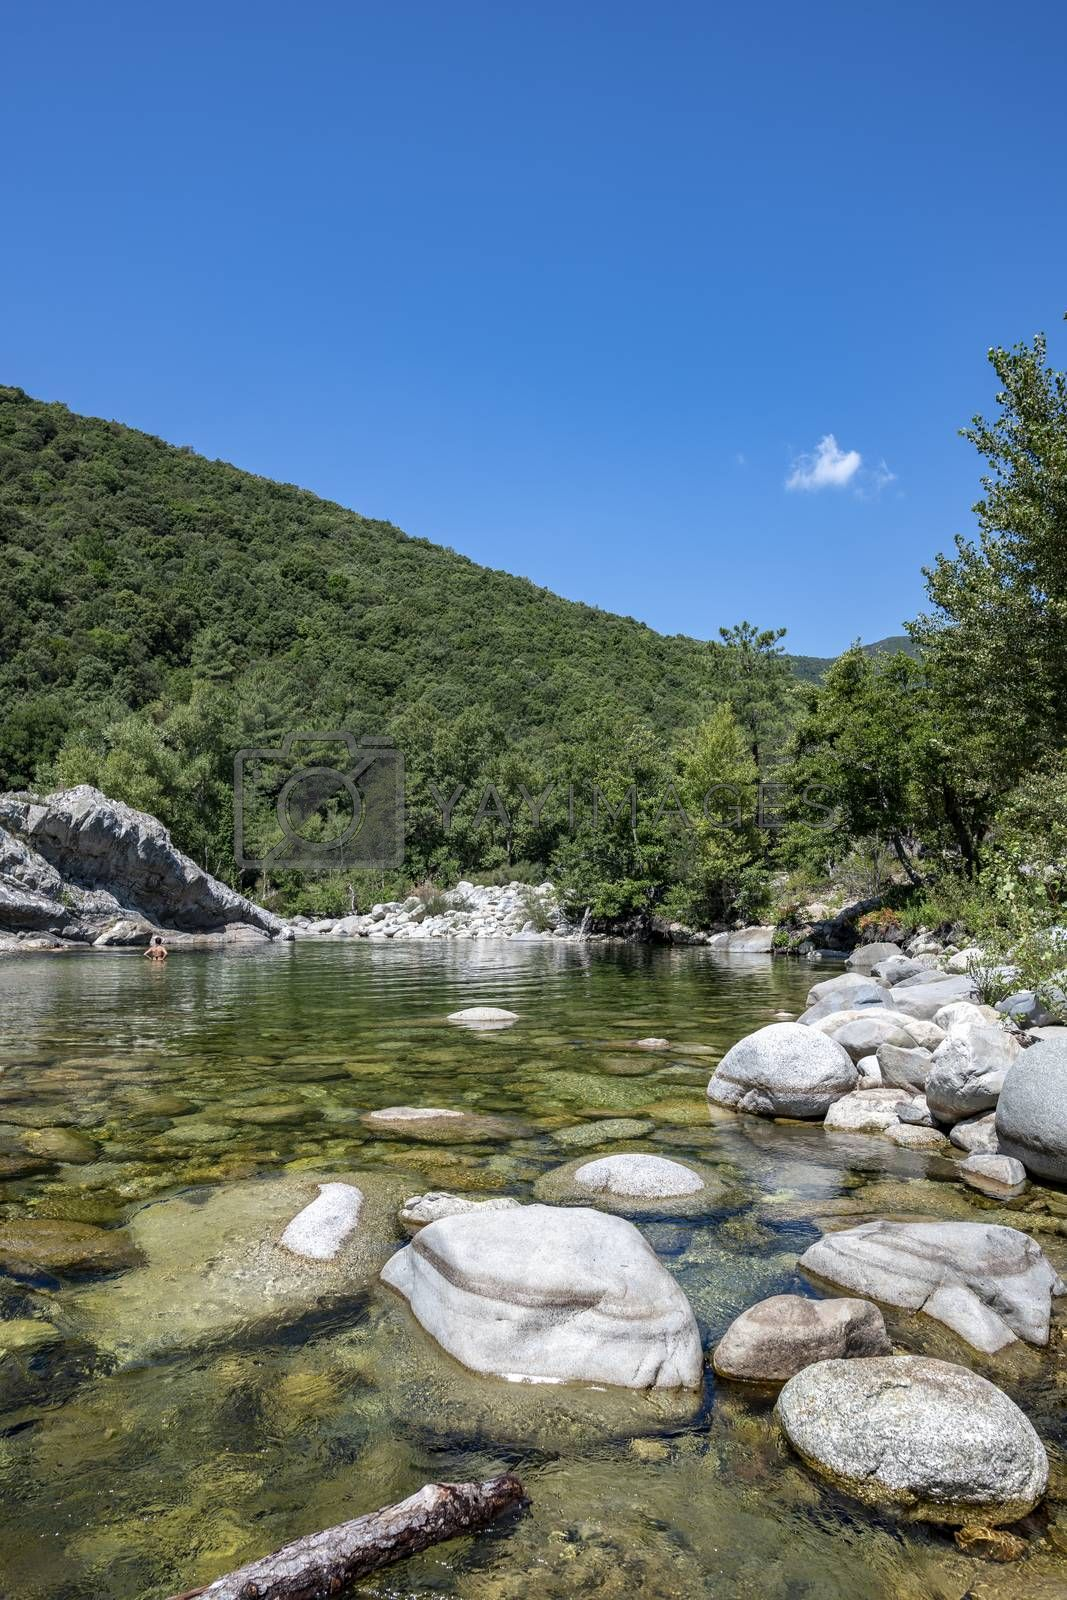 People enjoying in a Pure and fresh water natural pool of Travu River, Corsica, France, Europe (copy space in the sky)